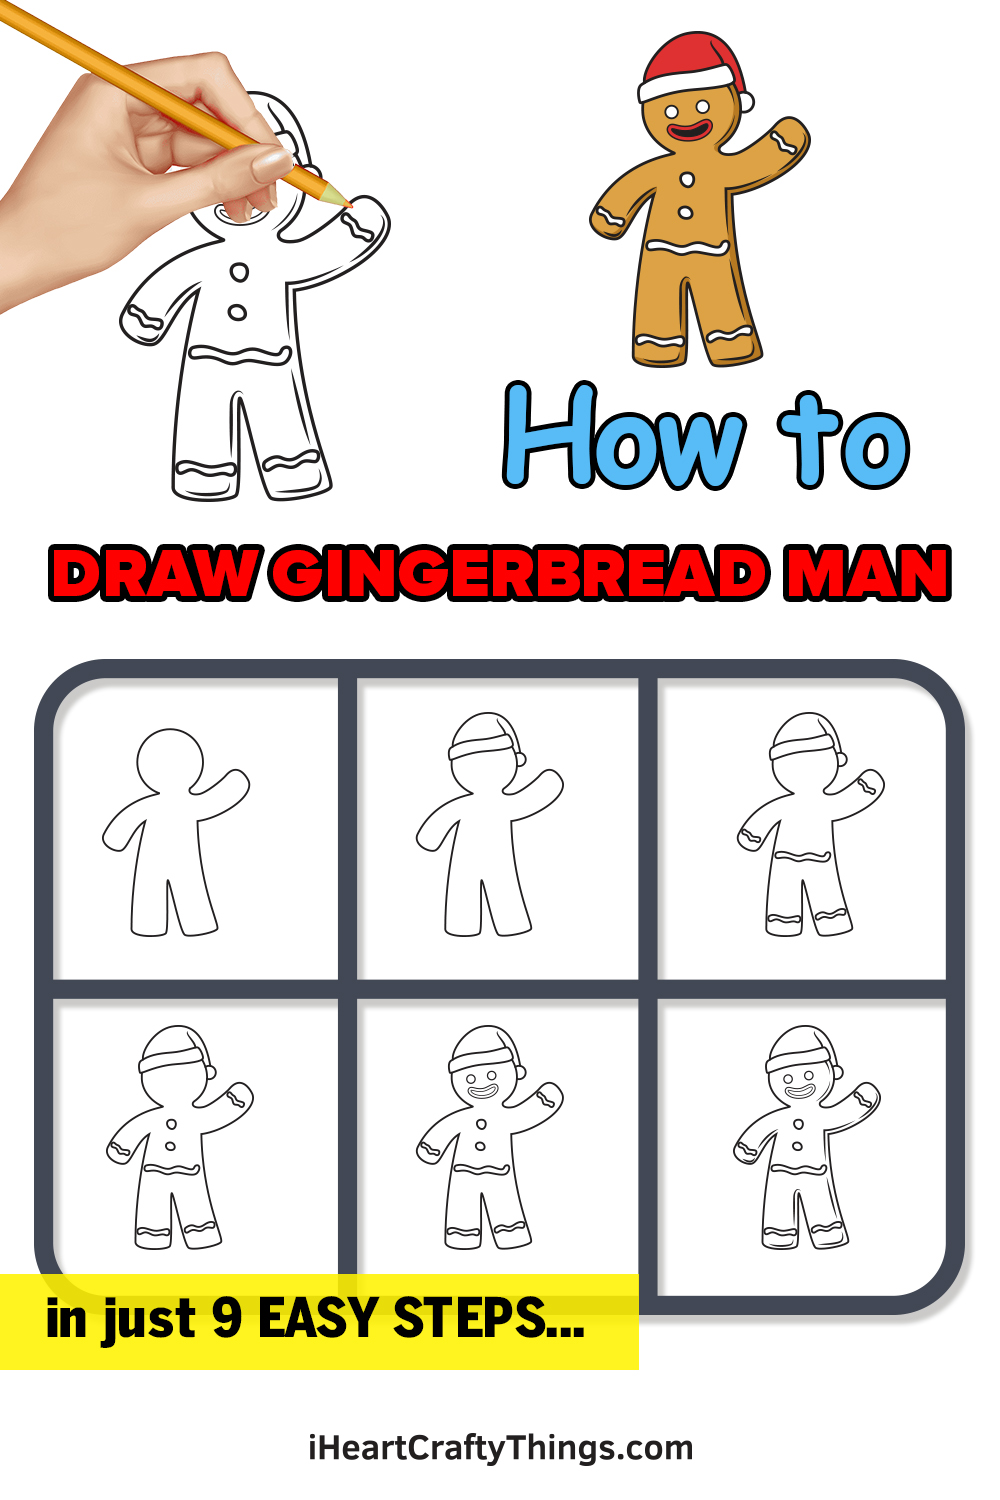 how to draw gingerbread man in 9 easy steps